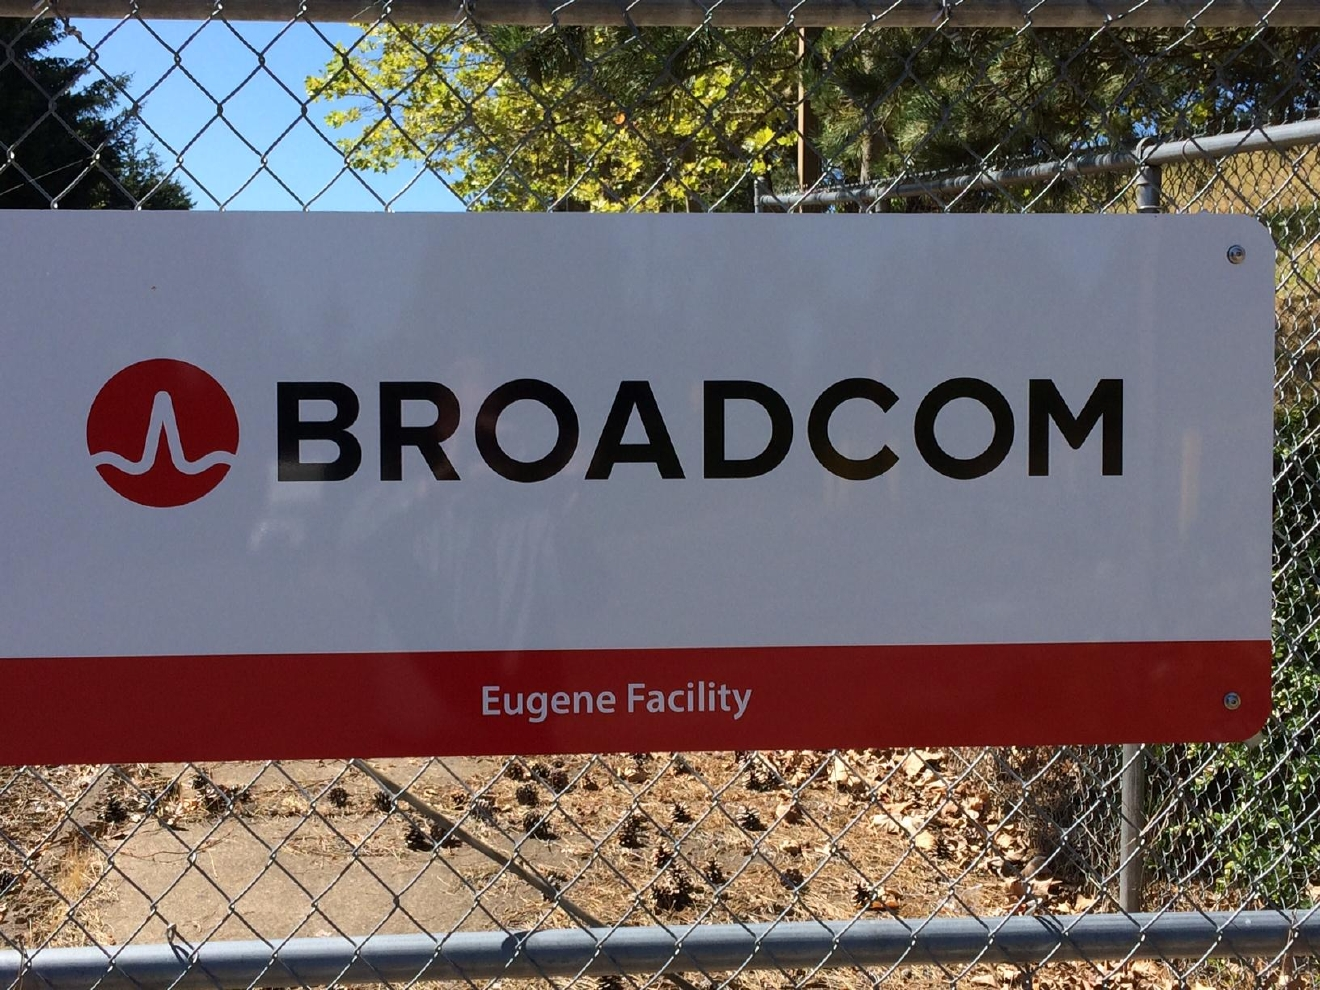 Broadcom (also known as Avago Technologies) already secured a 3-year tax exemption under the enterprise zone. The Council voted Monday to extend that tax break by 2 years. Lane County has to sign off to make the exemption official. (SBG)